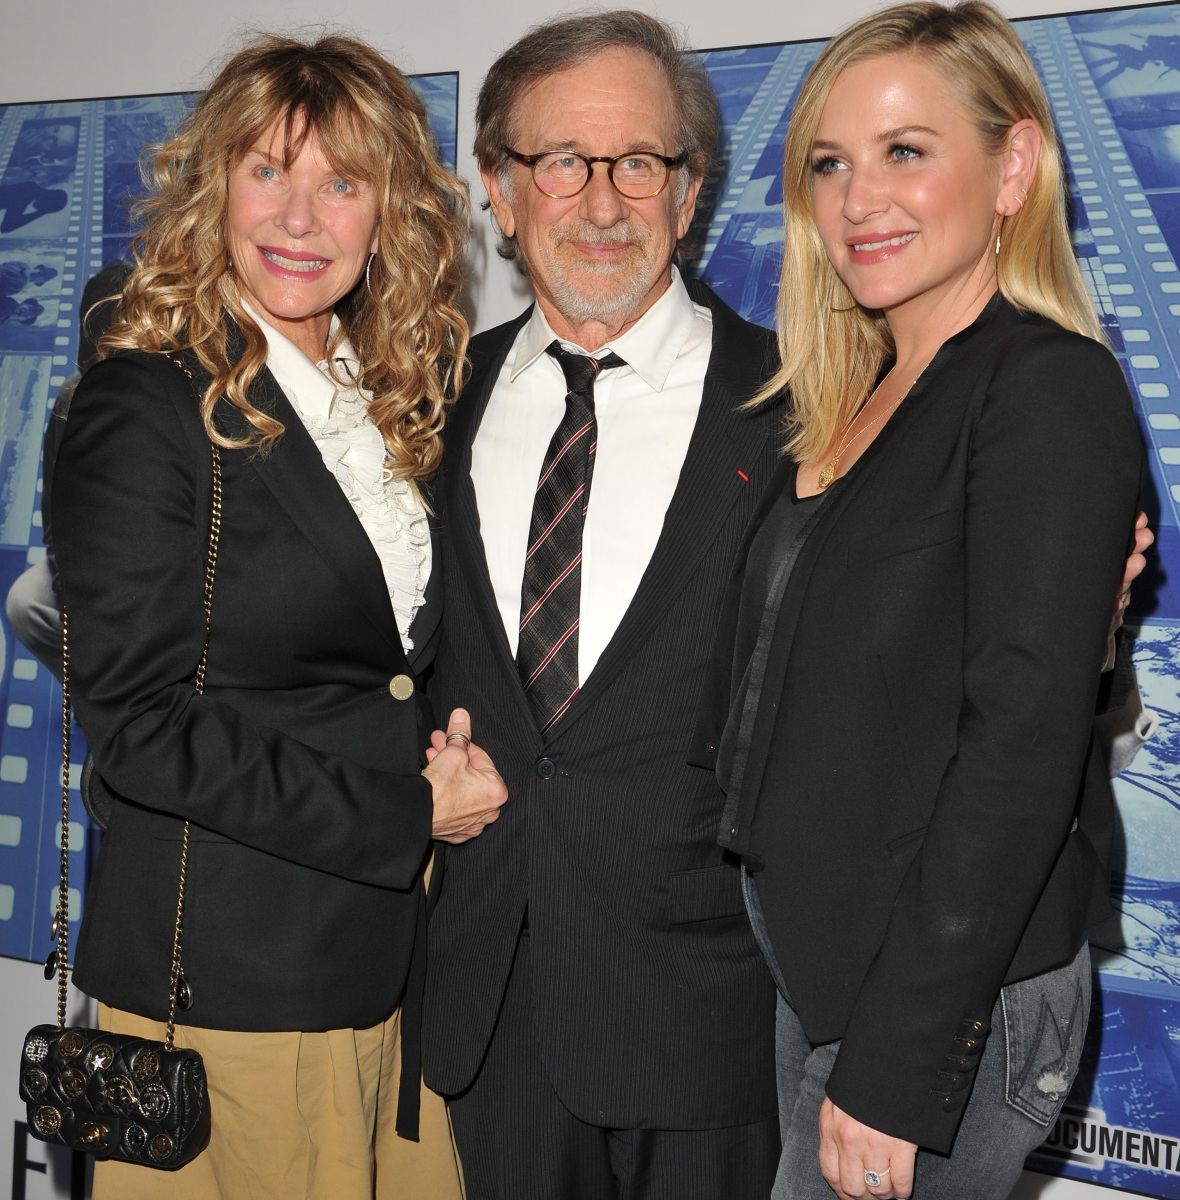 kate capshaw jessica capshaw steven spielberg getty images